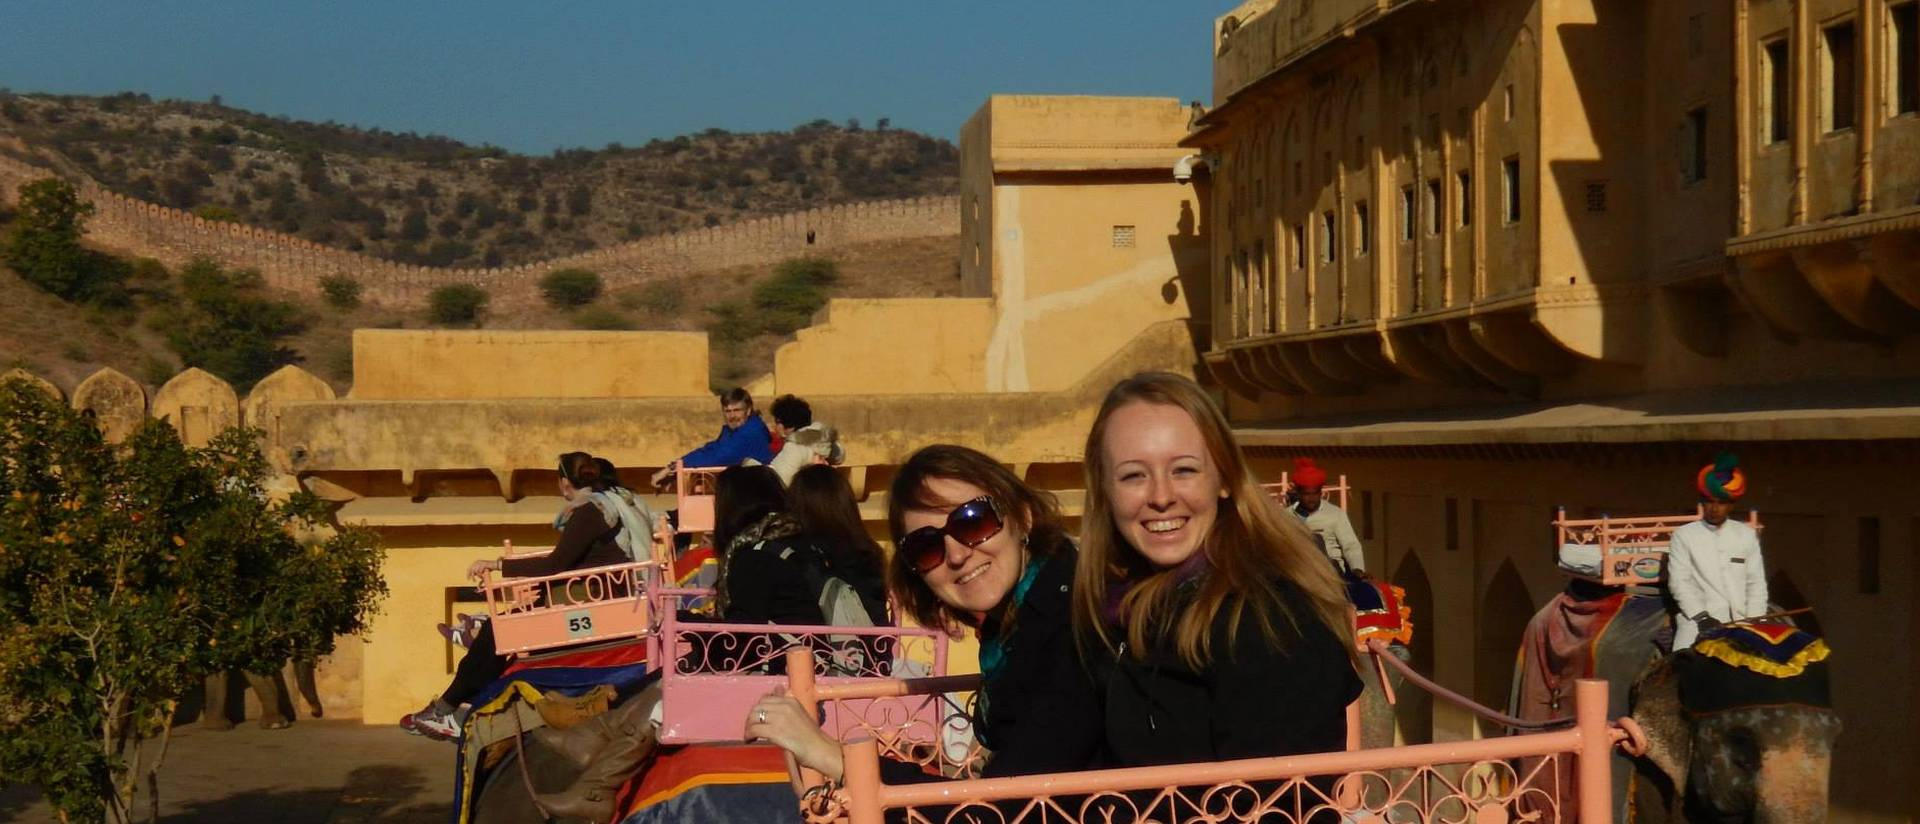 Vanessa Kane (left) riding up to Amber Fort